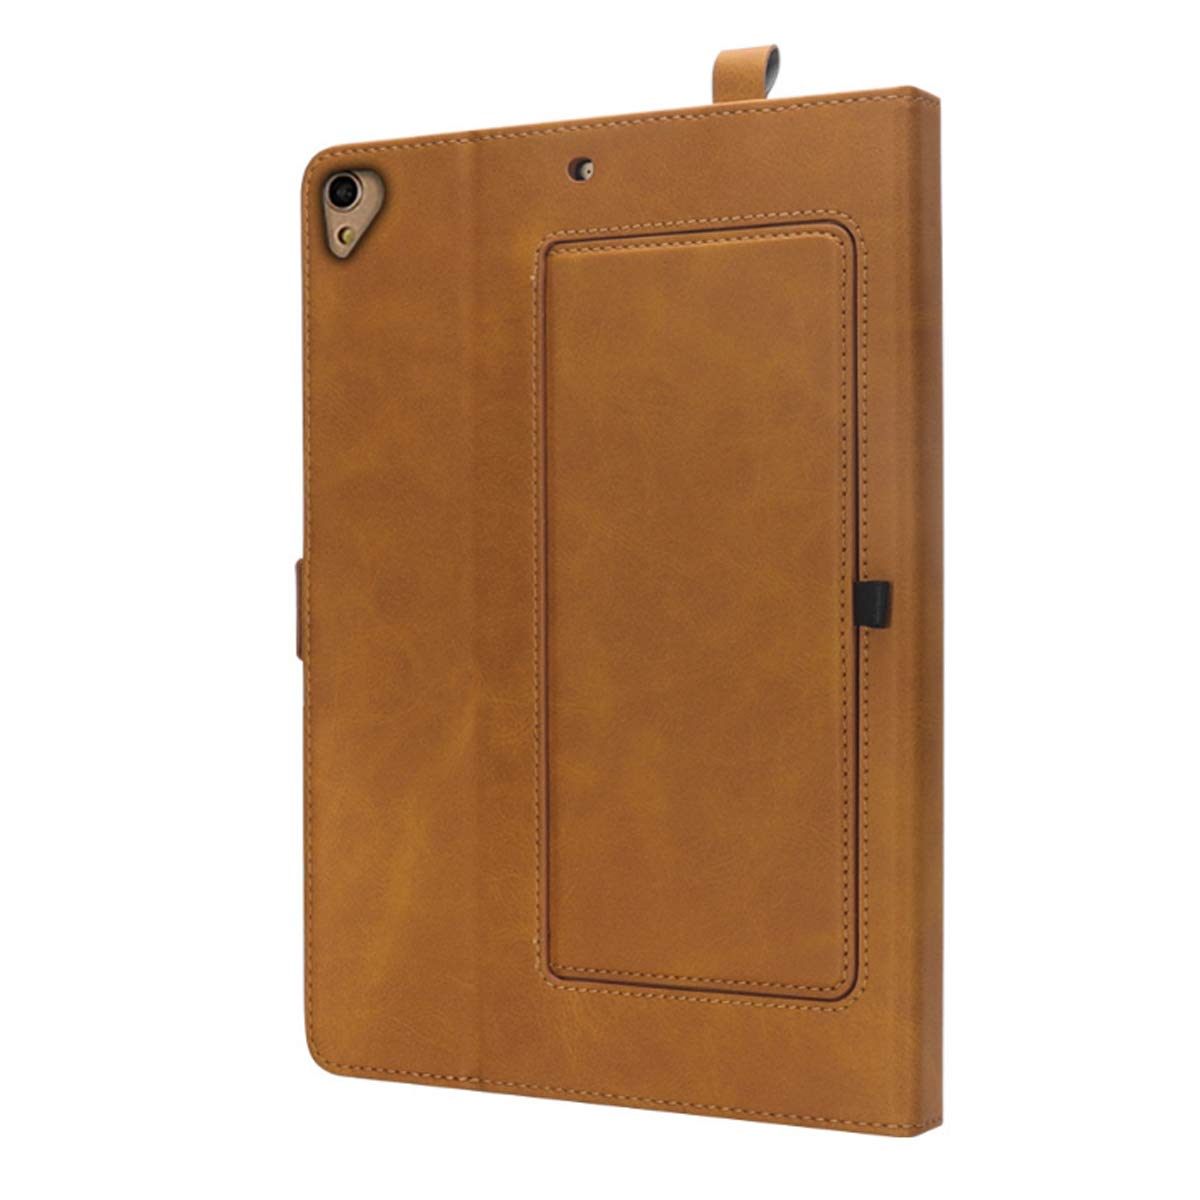 iPad 6th Generation Cases with Pencil Holder, Premium PU Leather Folio Case Soft TPU Back Protective Stand Cover with Card Slots for iPad 9.7 Inch 2018 (6th Gen) / iPad 9.7'' 2017 (5th Gen) –Khaki by KATEGY (Image #9)